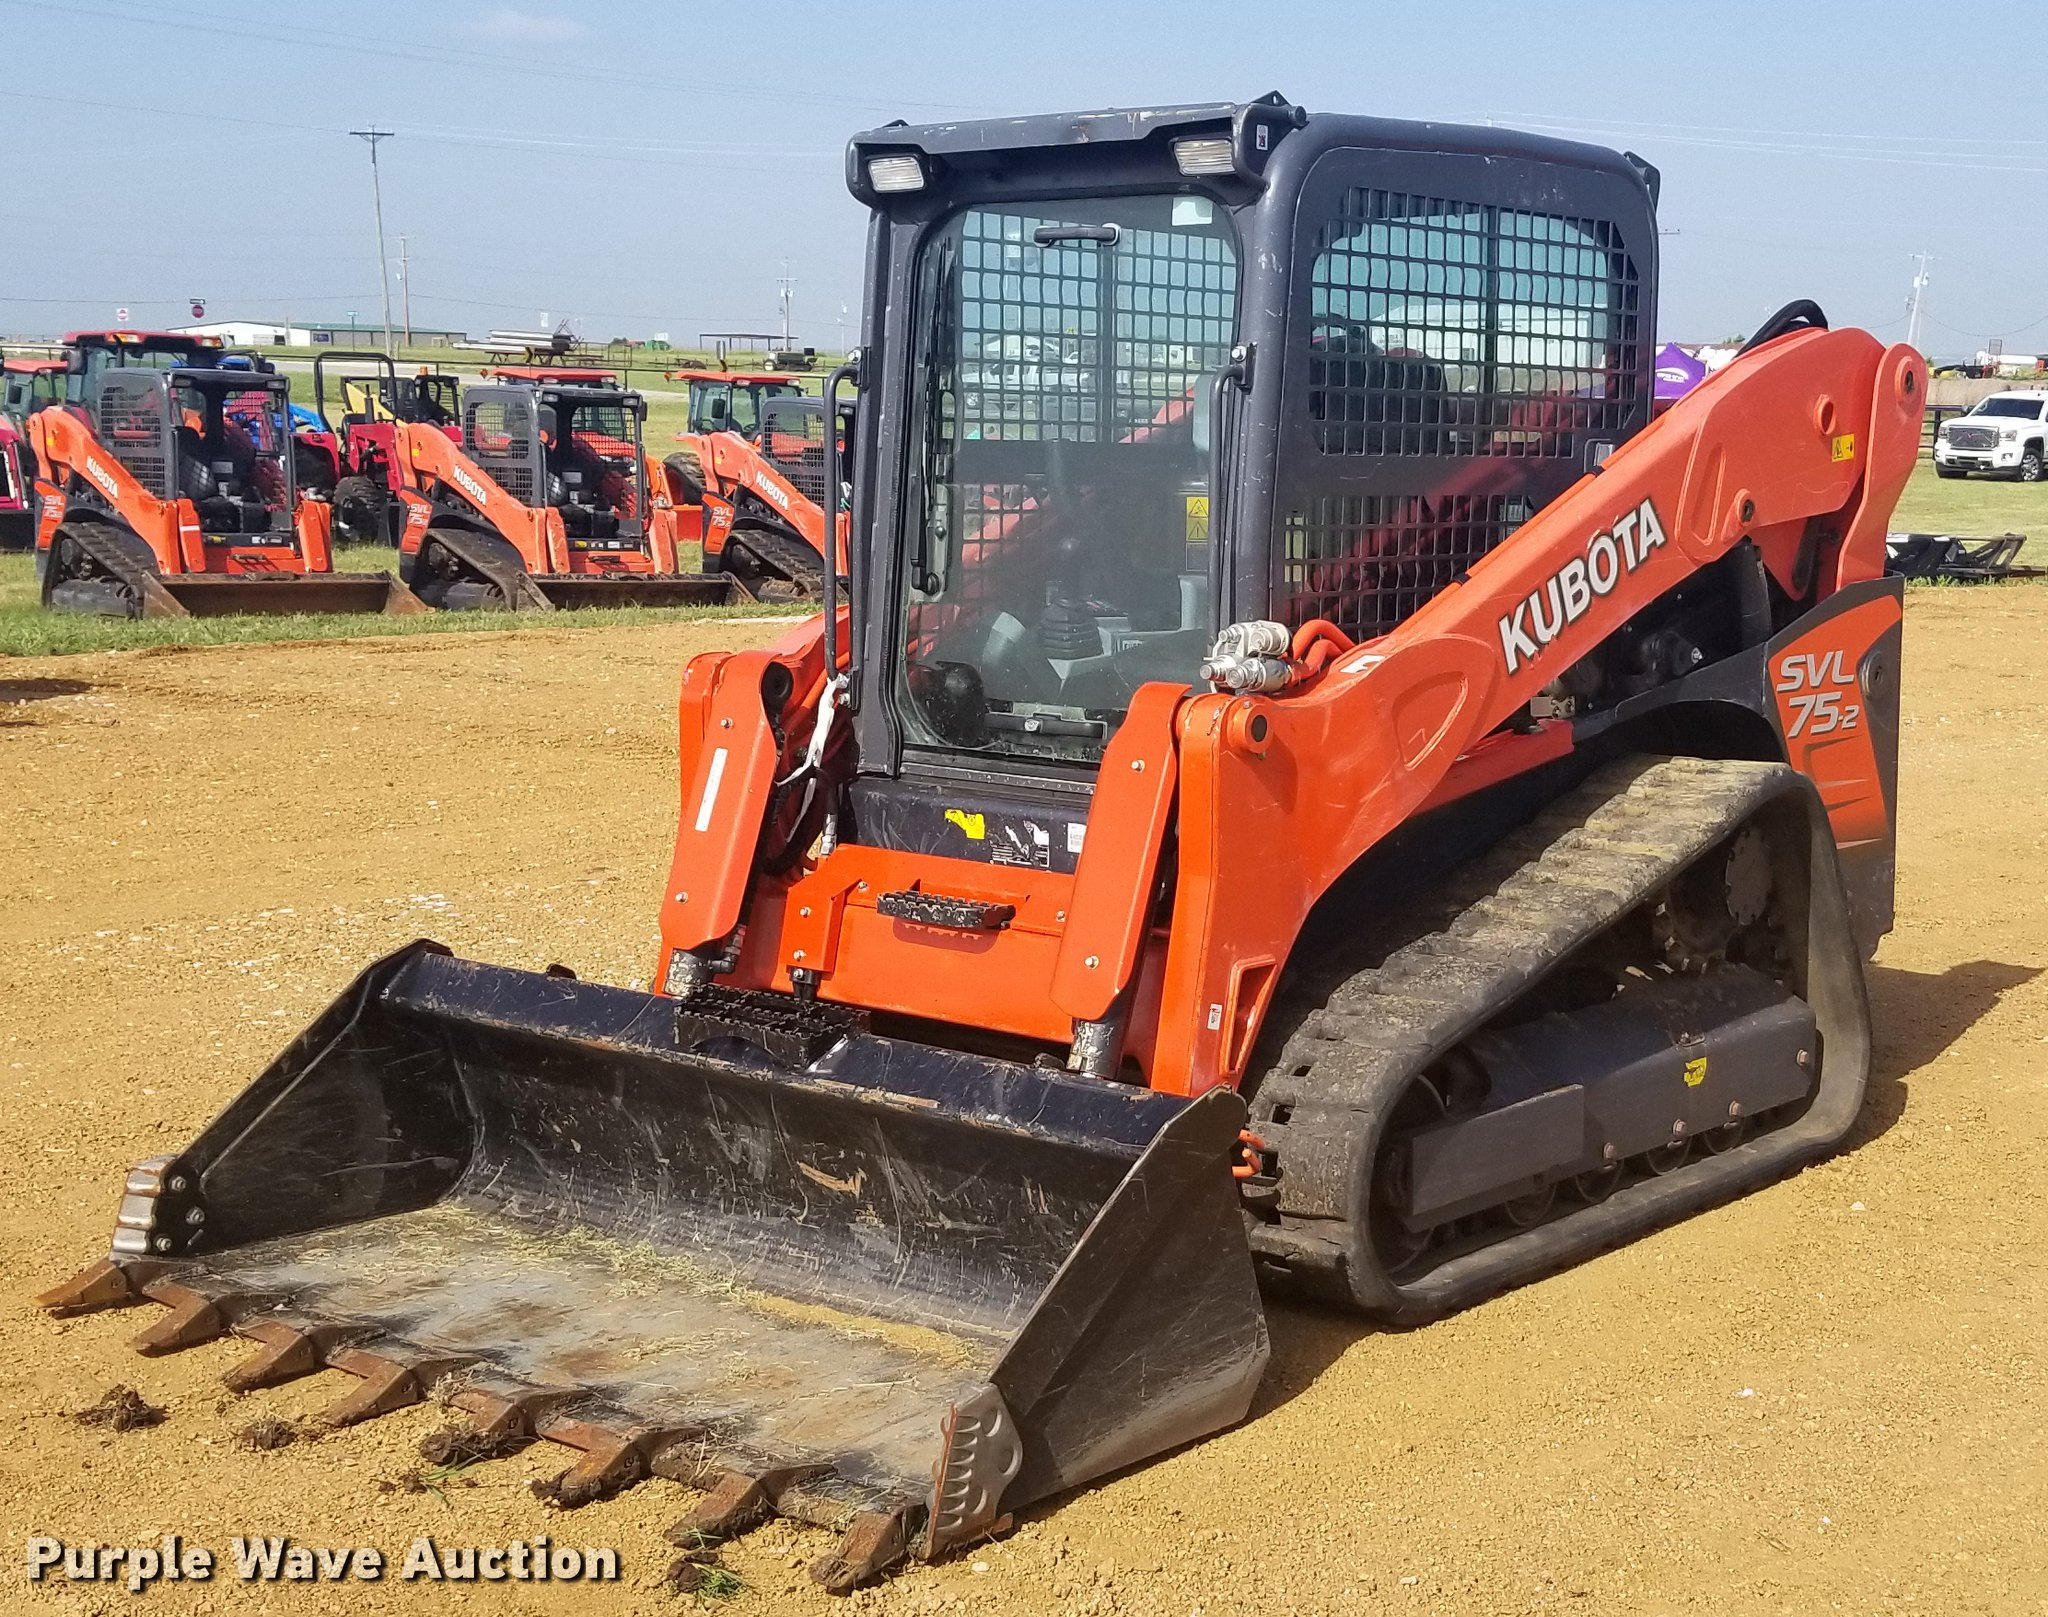 2015 Kubota SVL75-2 skid steer | Item EI9083 | SOLD! June 12